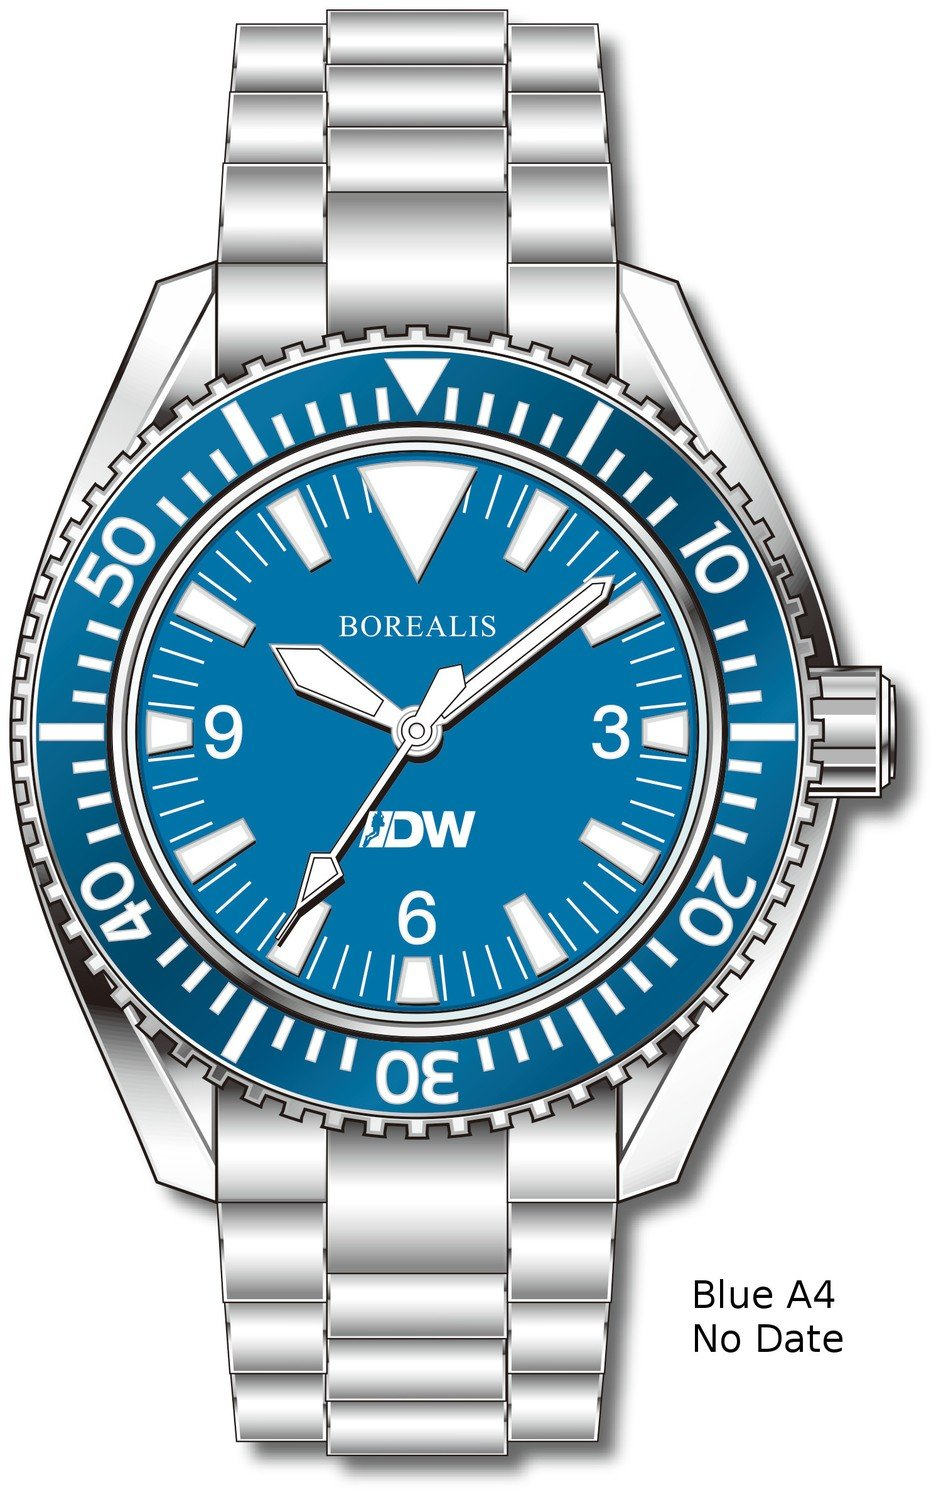 Pre-Order Borealis Estoril 300 for Diver's Watches Facebook Group Blue Dial Big Triangle No Date Blue A4